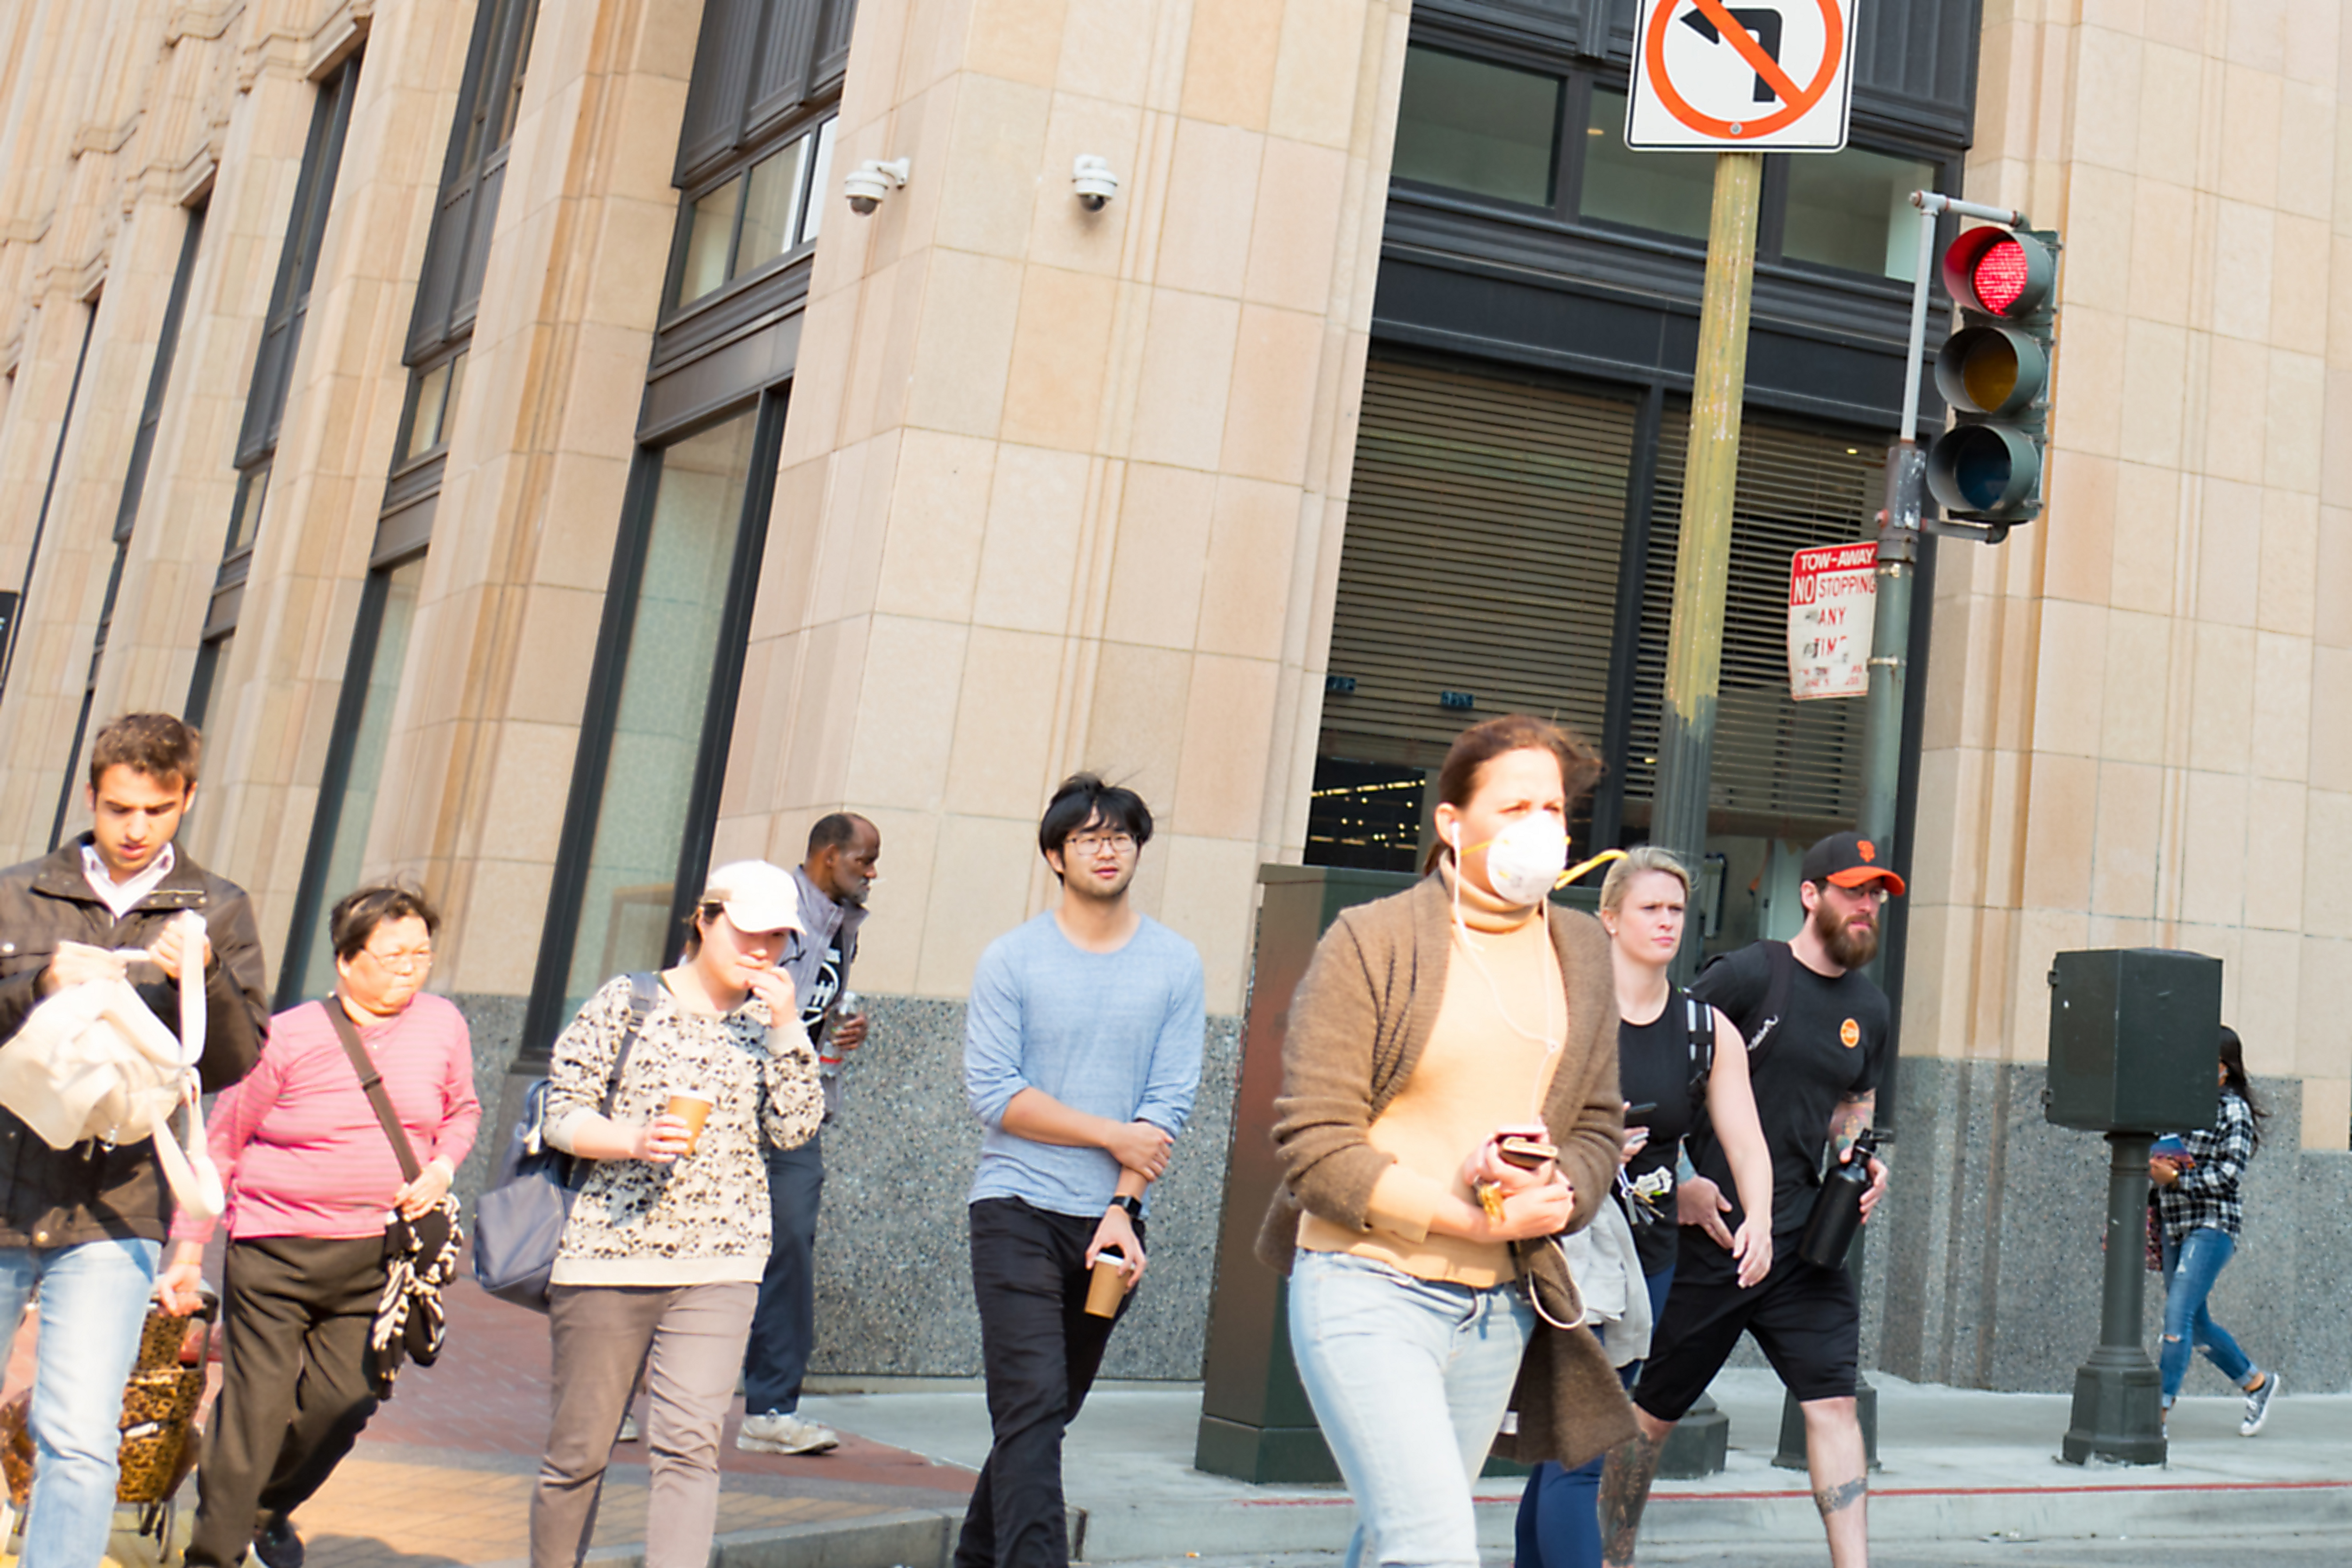 A person wearing a breathing mask walks across a street with three other people.